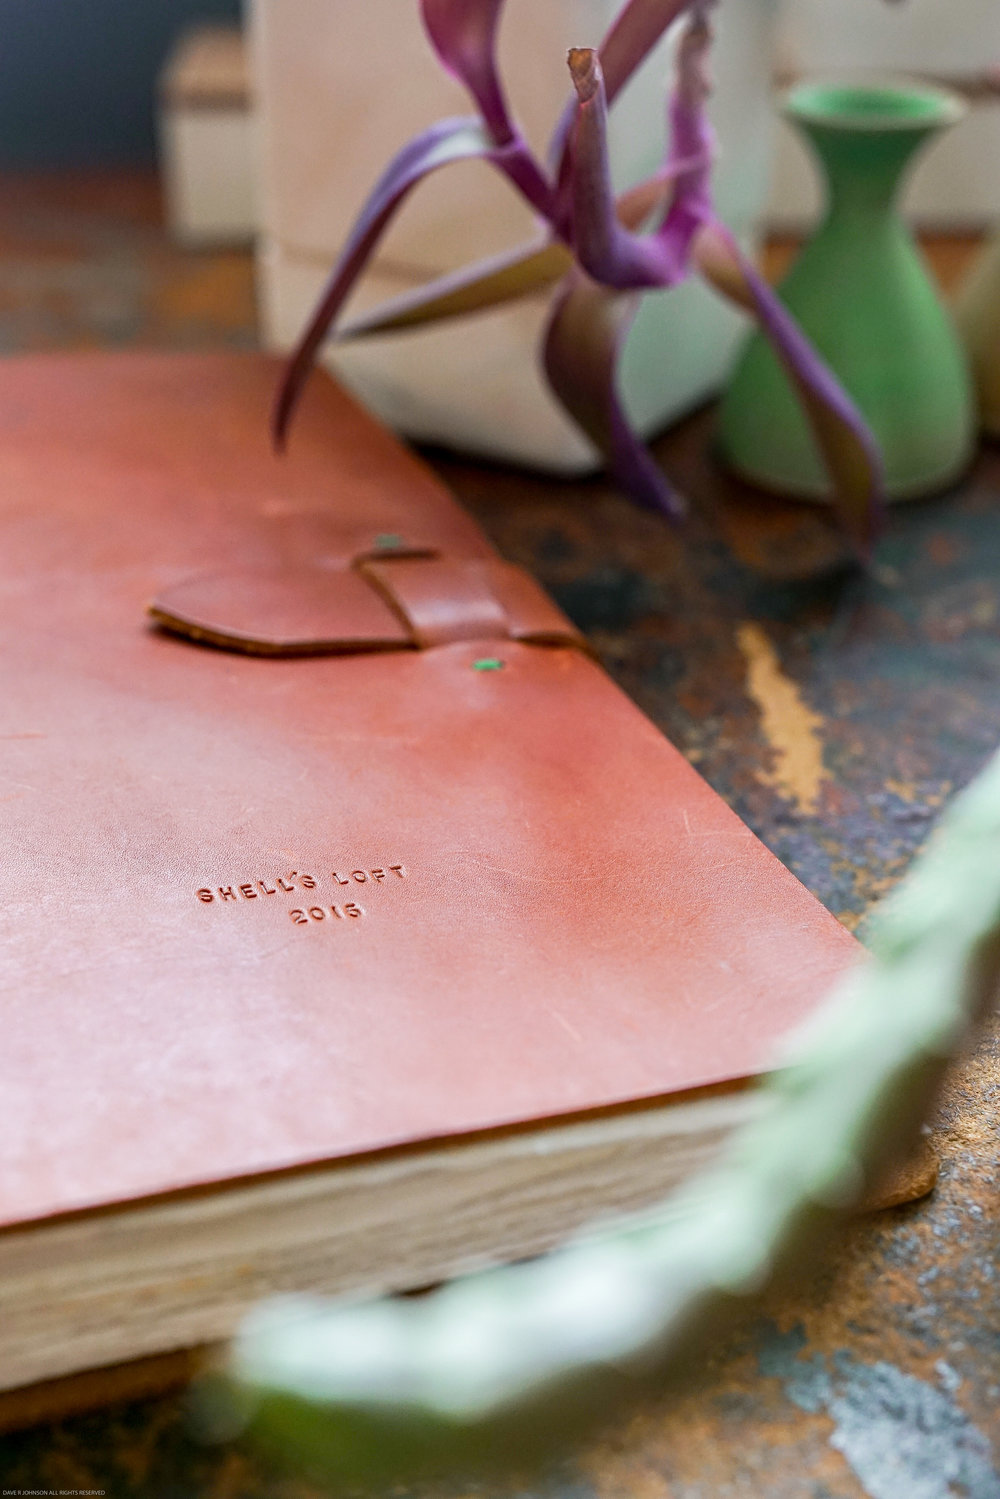 Shell's Loft :: Leather Contact Guest Book